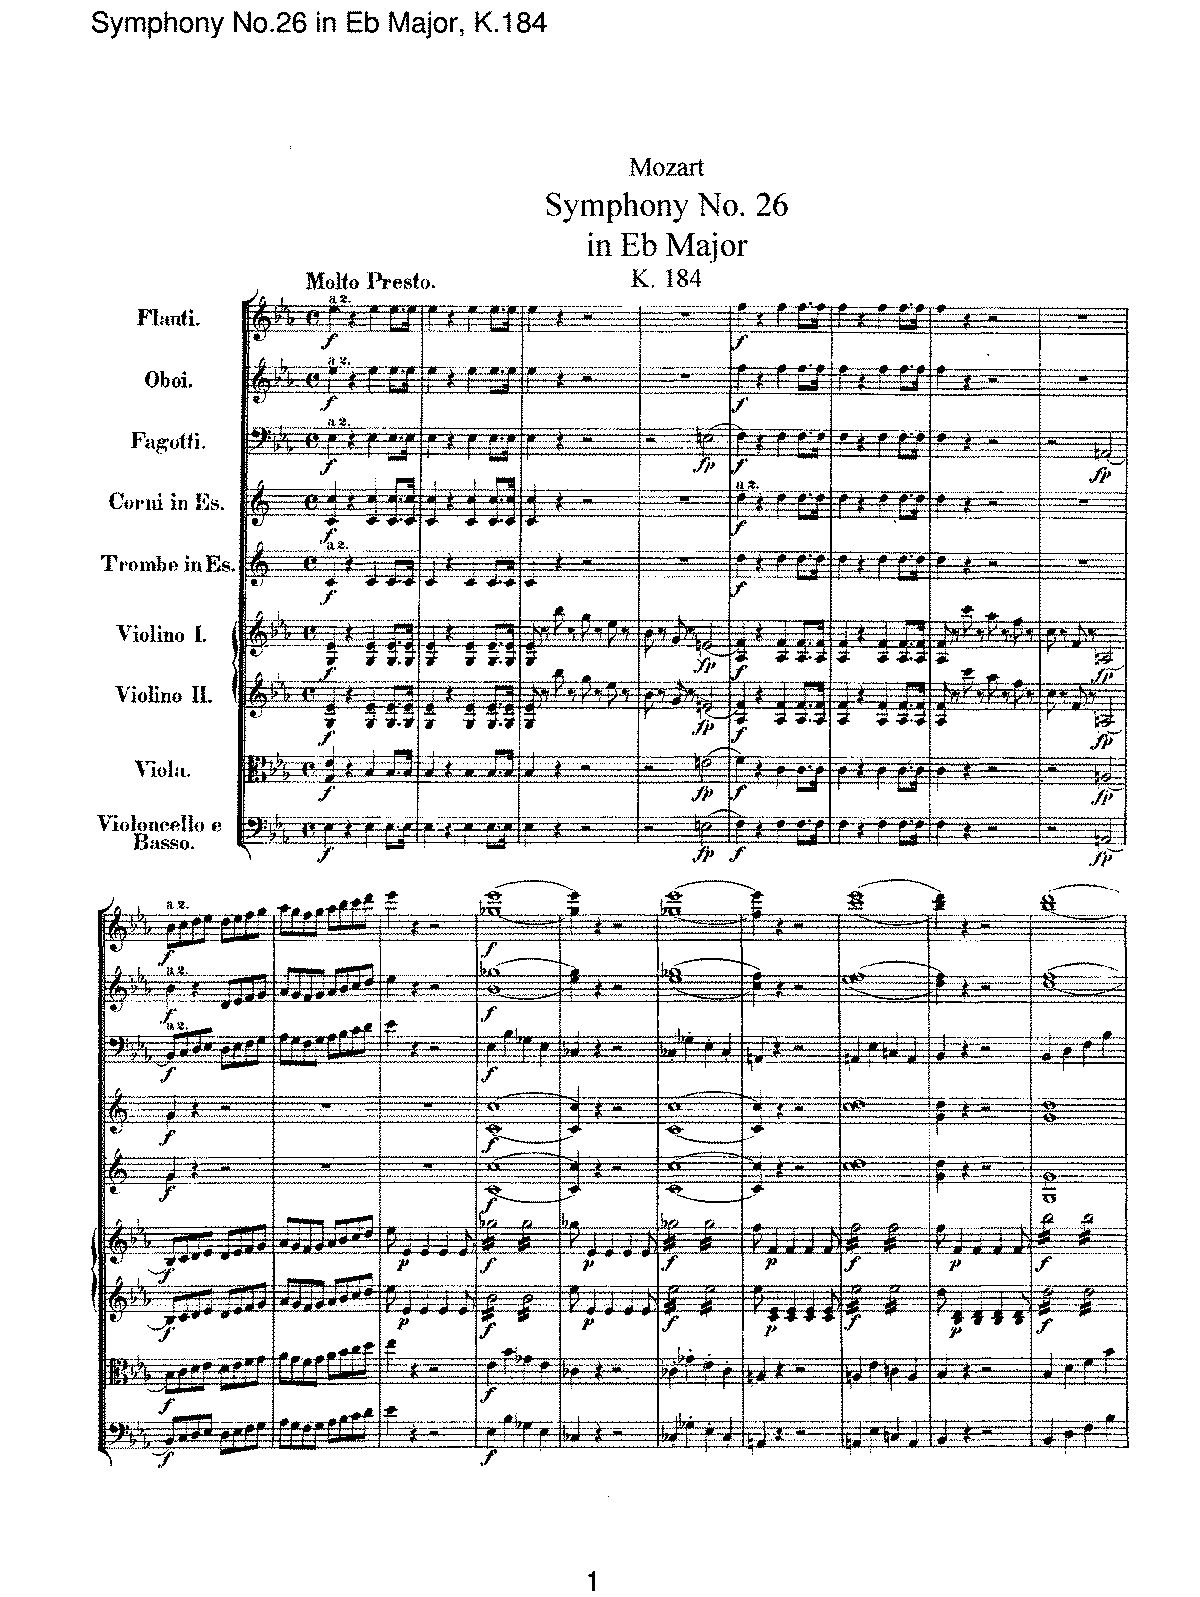 Mozart - Symphony No 26 in Eb Major, K184.pdf